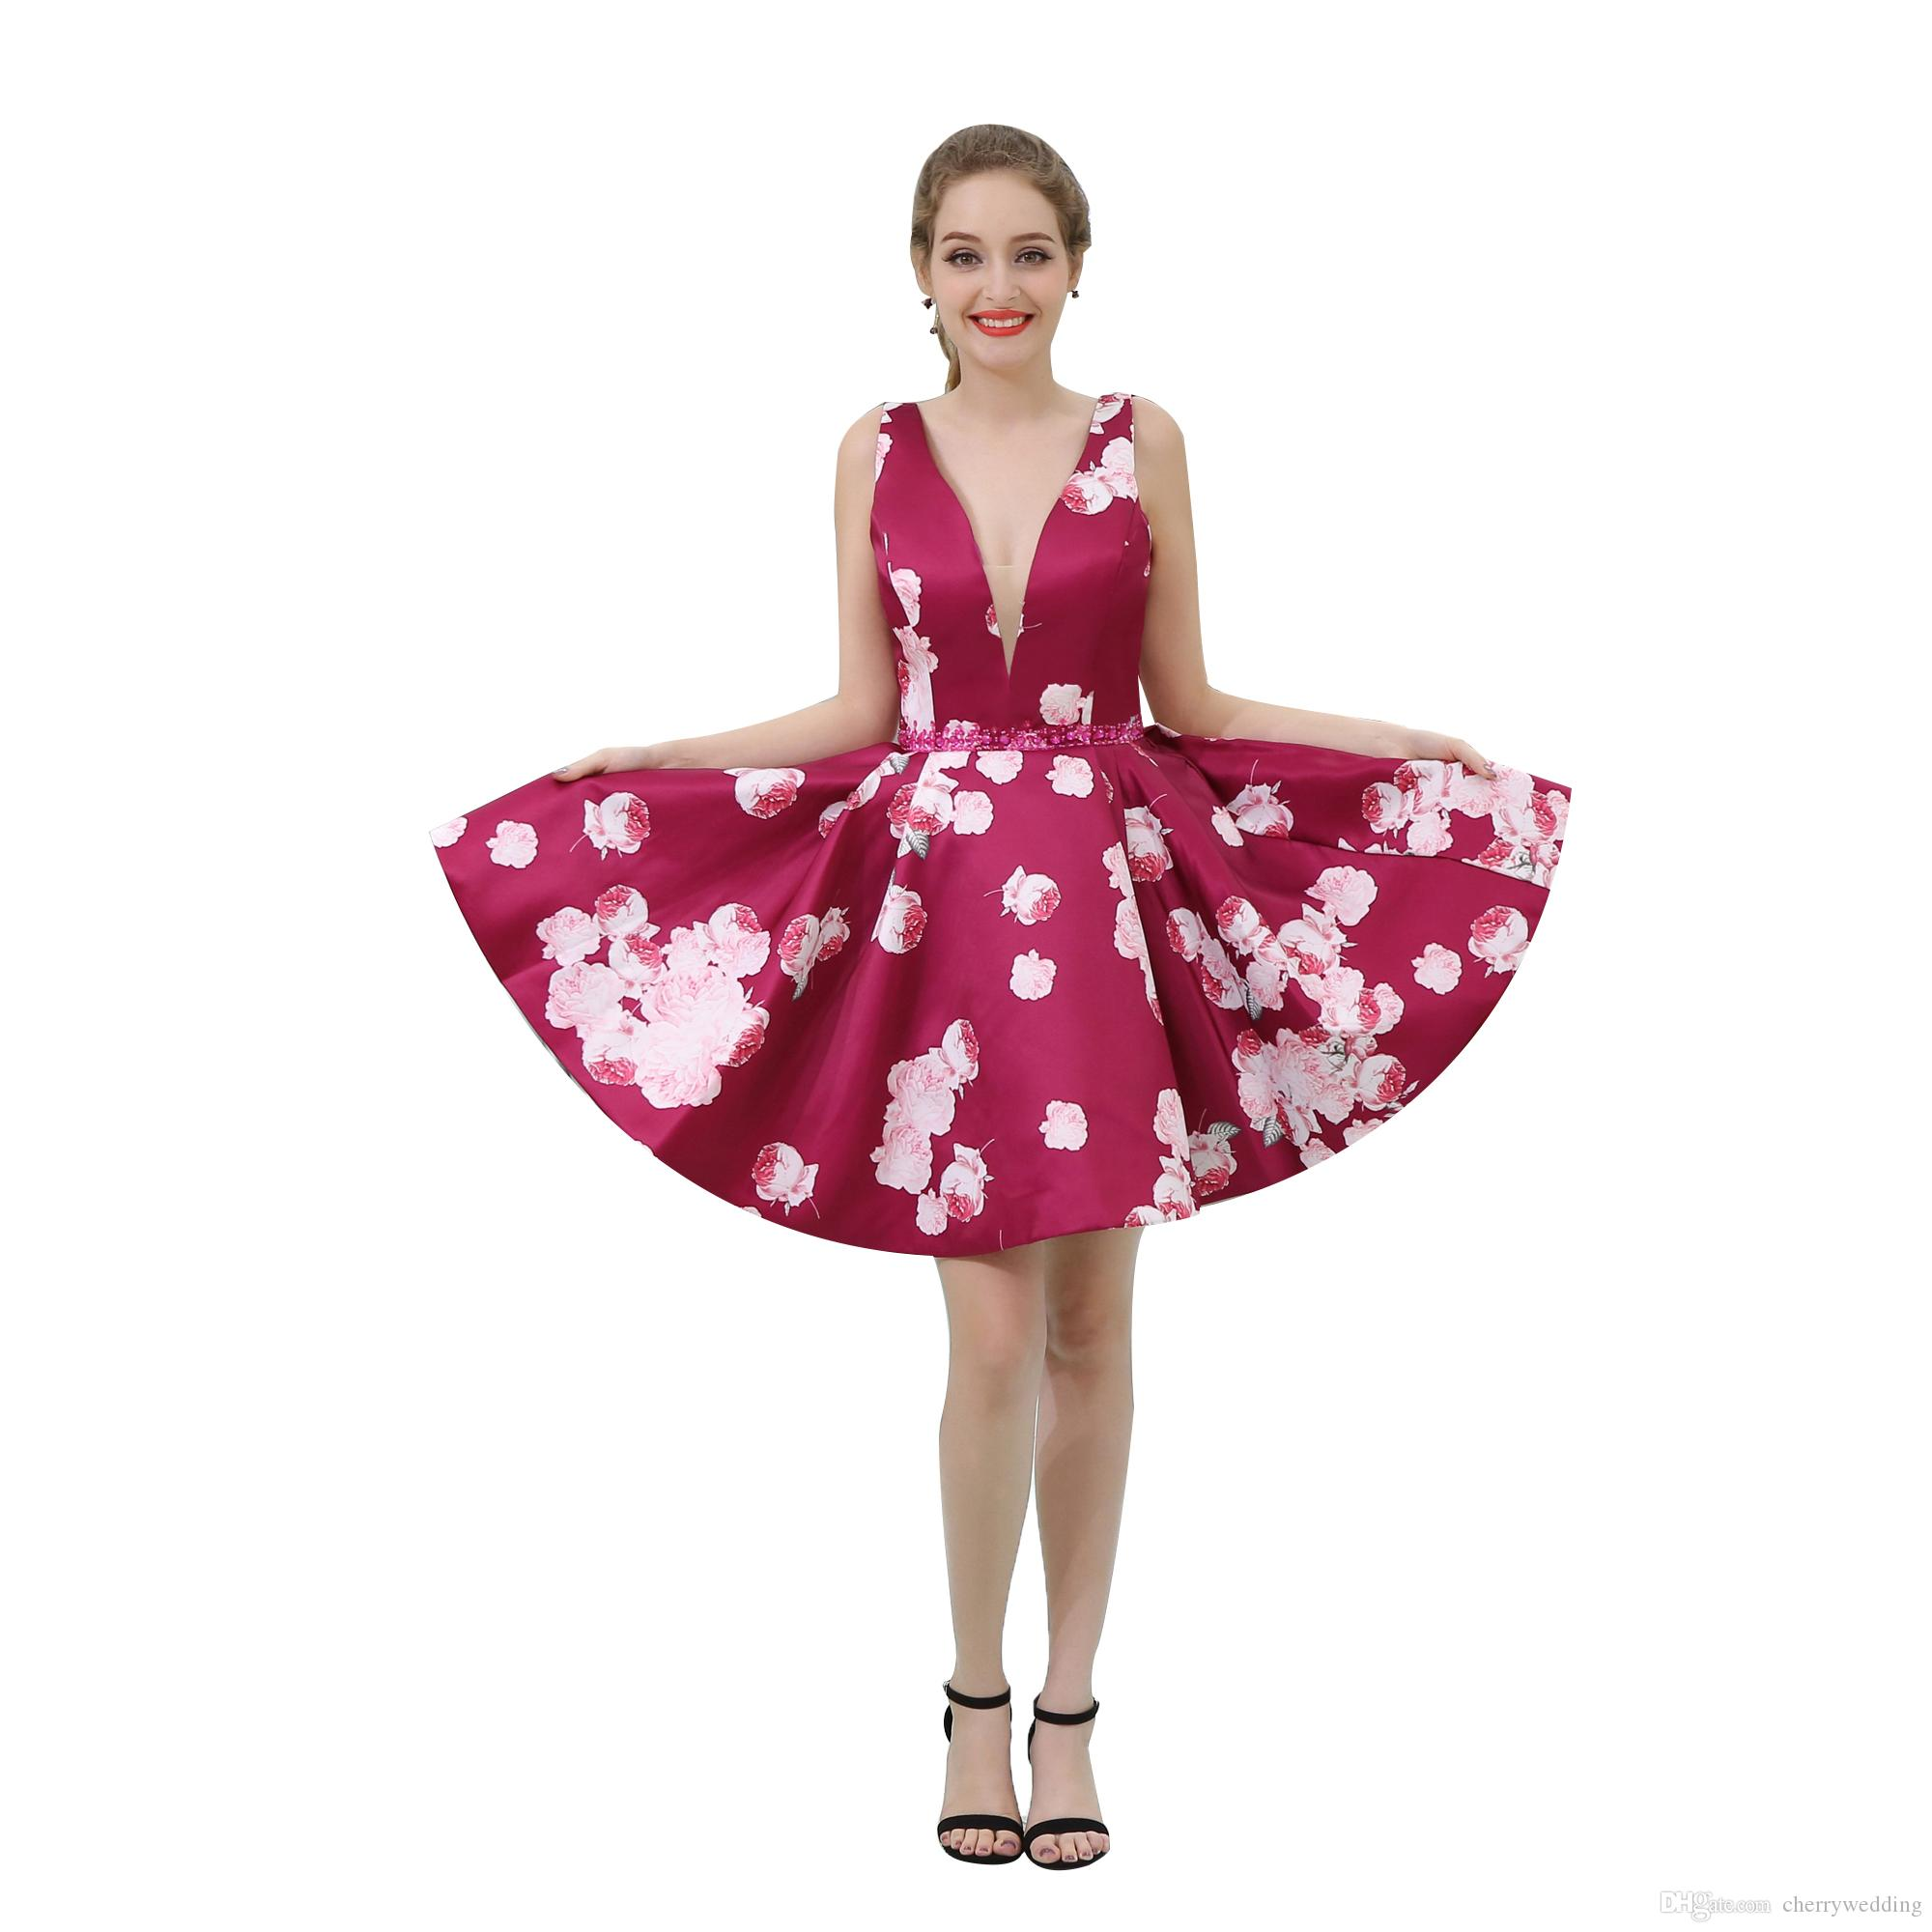 Fashion Short Mini Printed Prom Dresses Cheap Prom Dresses Formal Gowns Beaded Waist Party Dresses Deep V B042